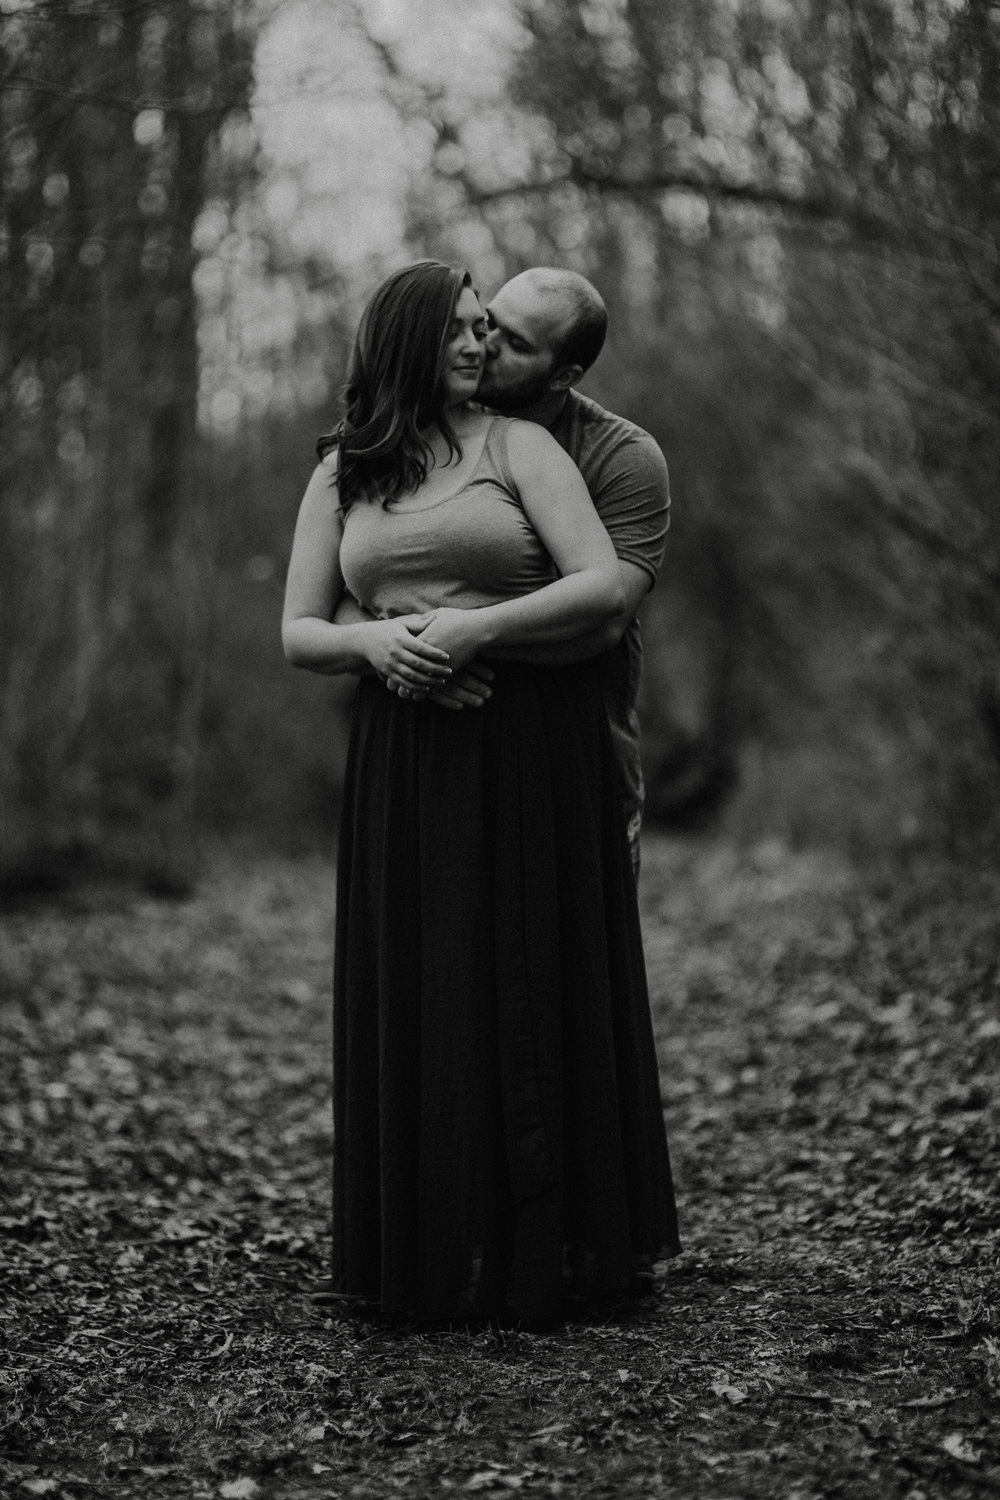 Cate_Ann_Photography_Dayton_Ohio_Wedding_Elopement_And_Engagement_PhotographerIMG_6689.jpg